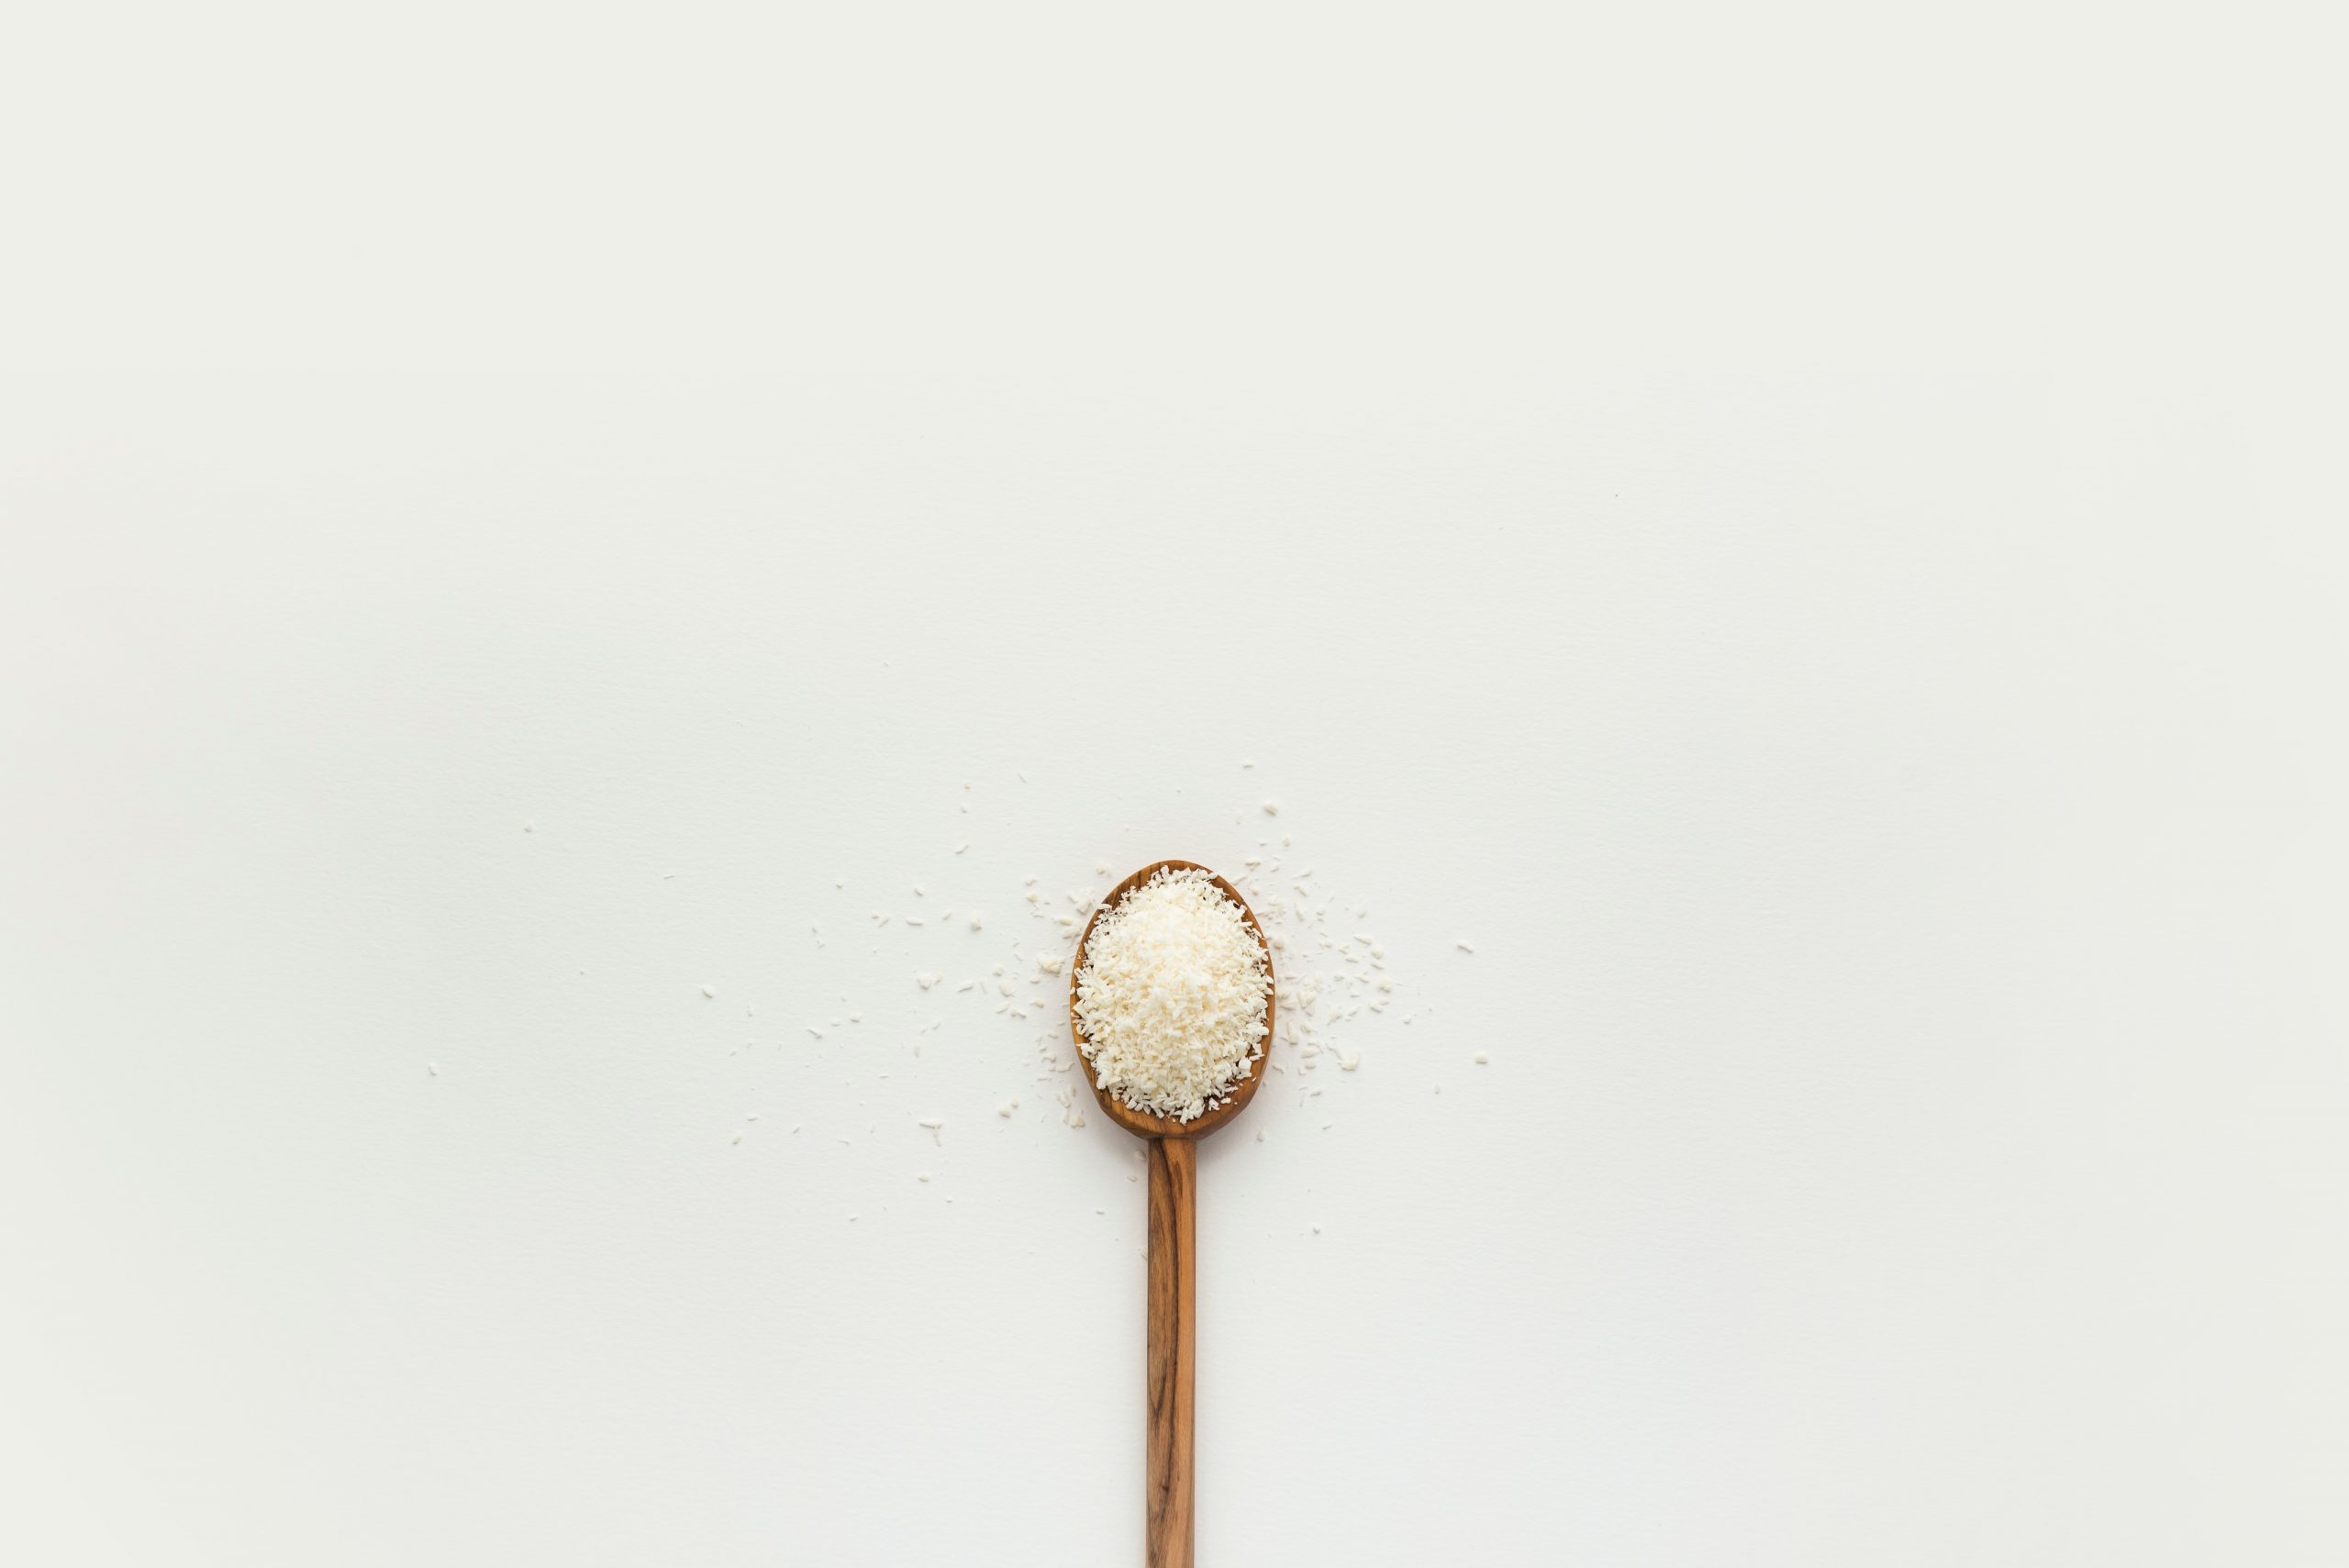 A wooden spoon full of Ferric Sulfate